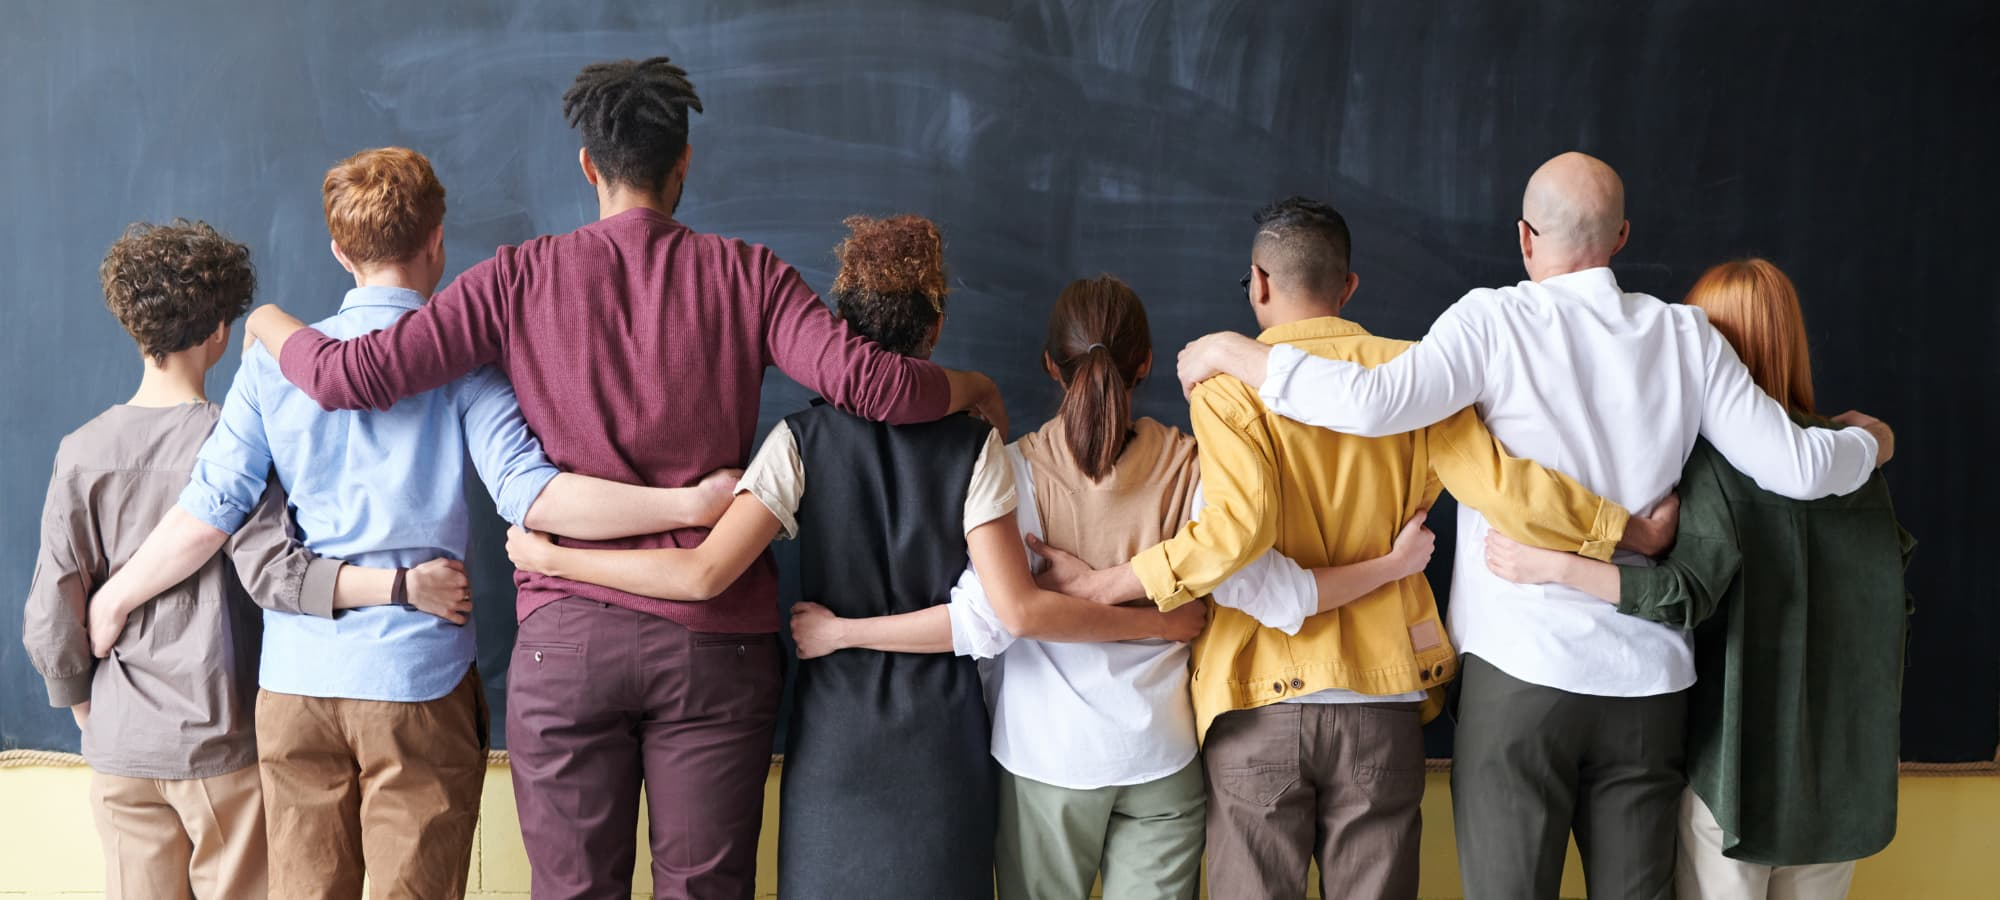 a diverse group of people linking arms in front of a blackboard